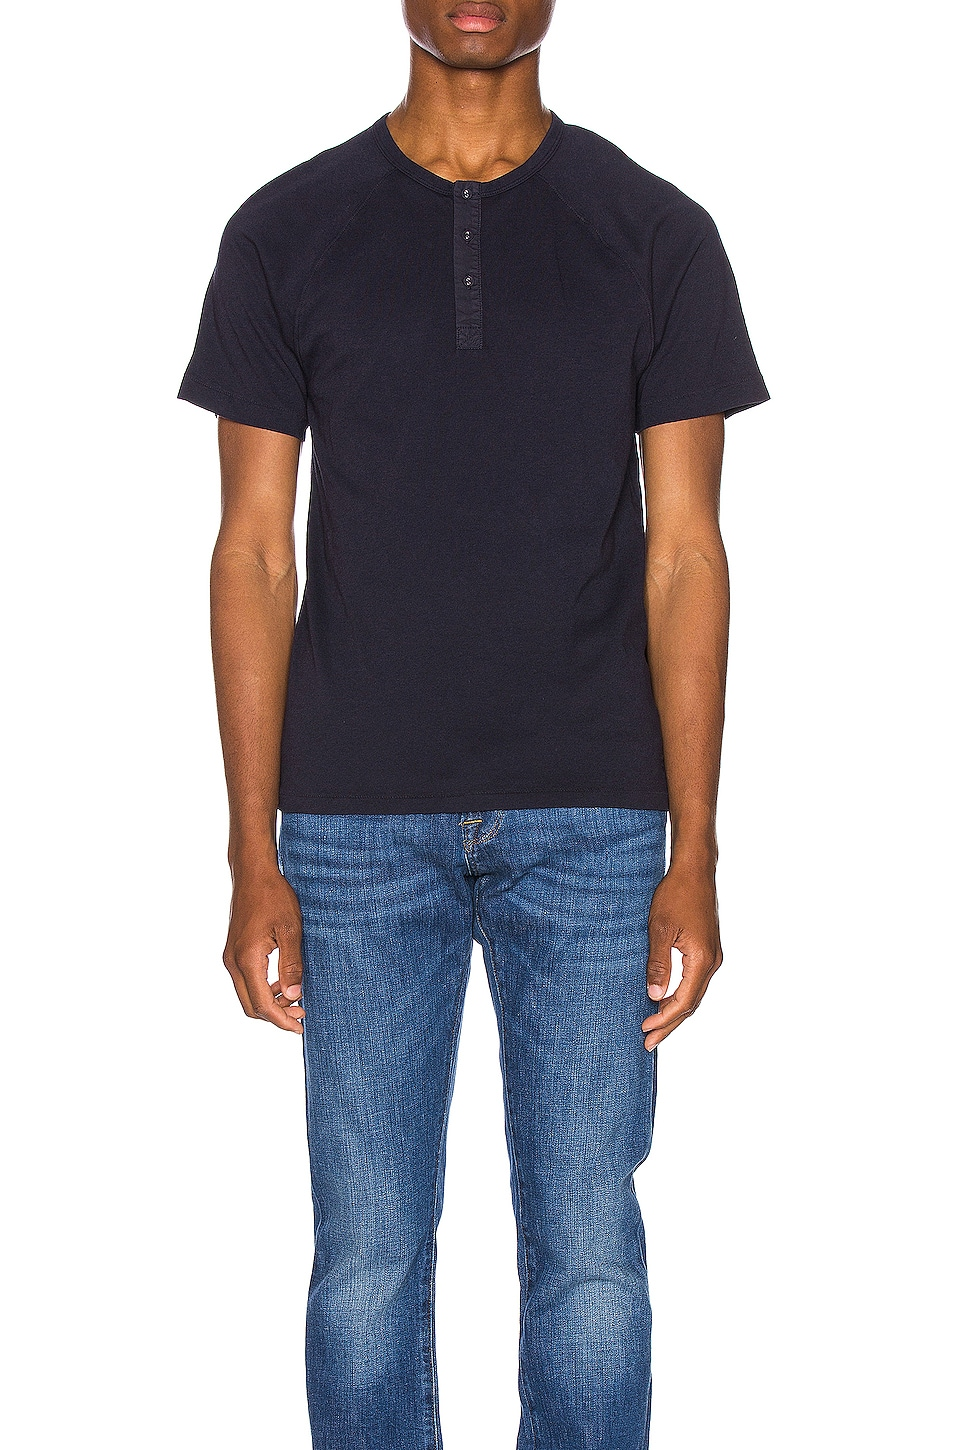 FRAME Short Sleeve Henley in Navy